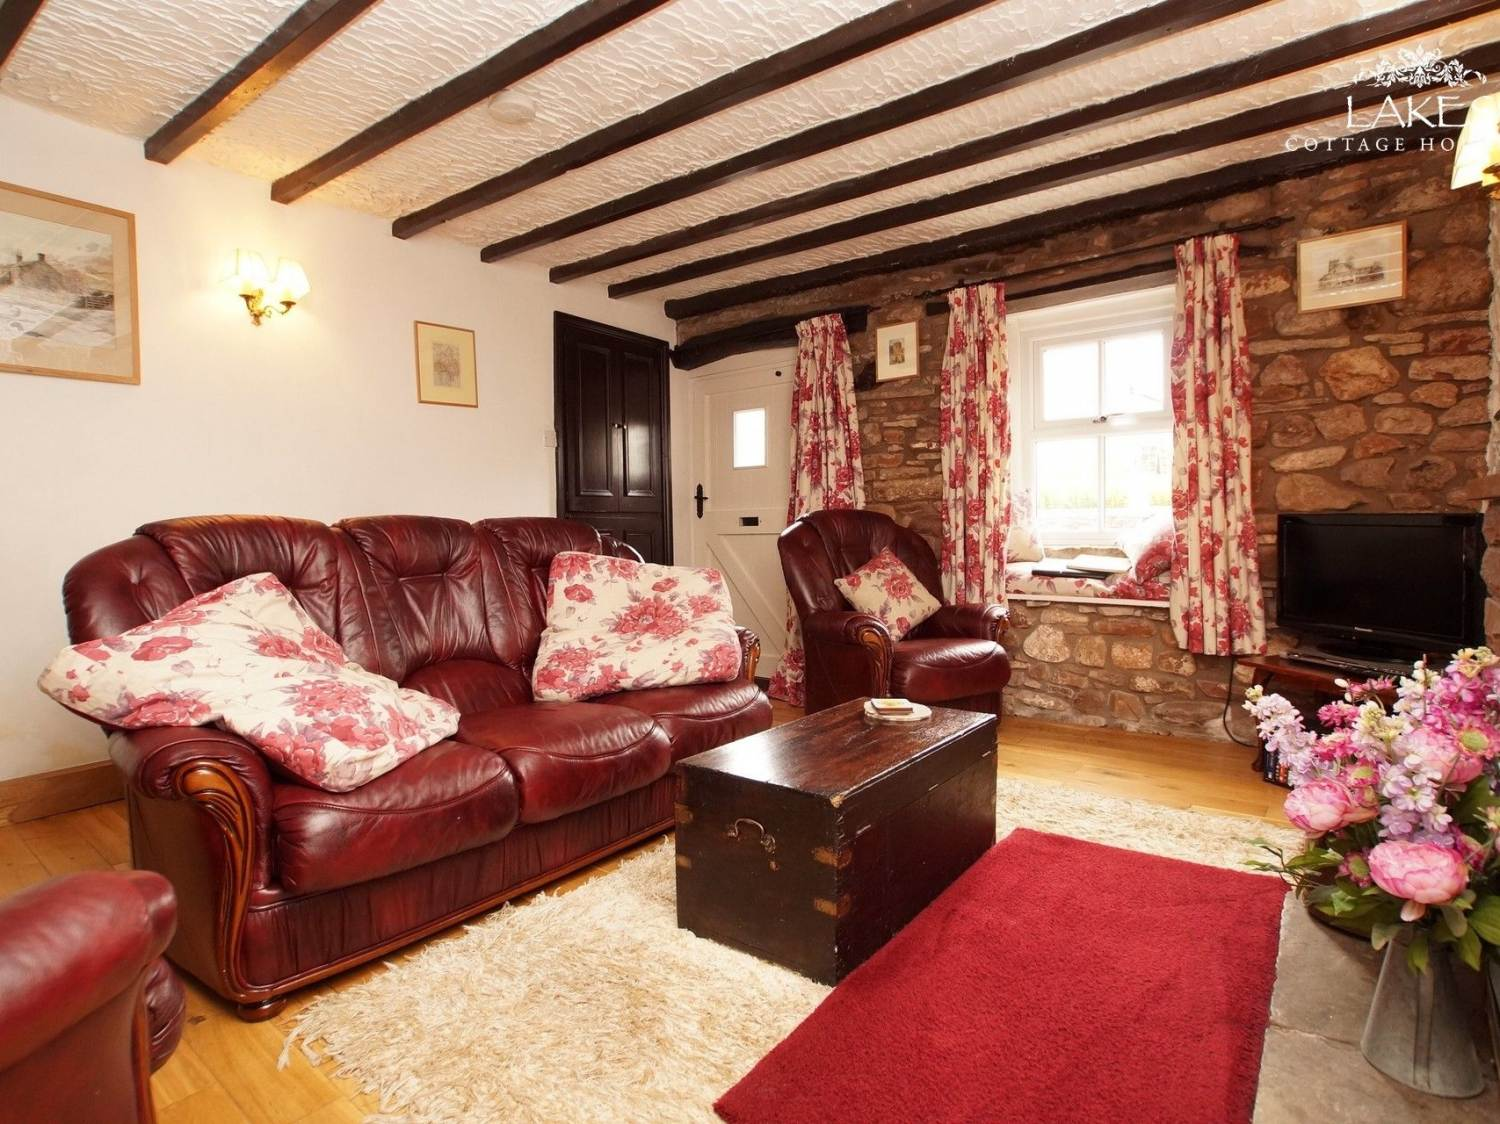 Cosy Cottage - Lake District - 972597 - photo 1